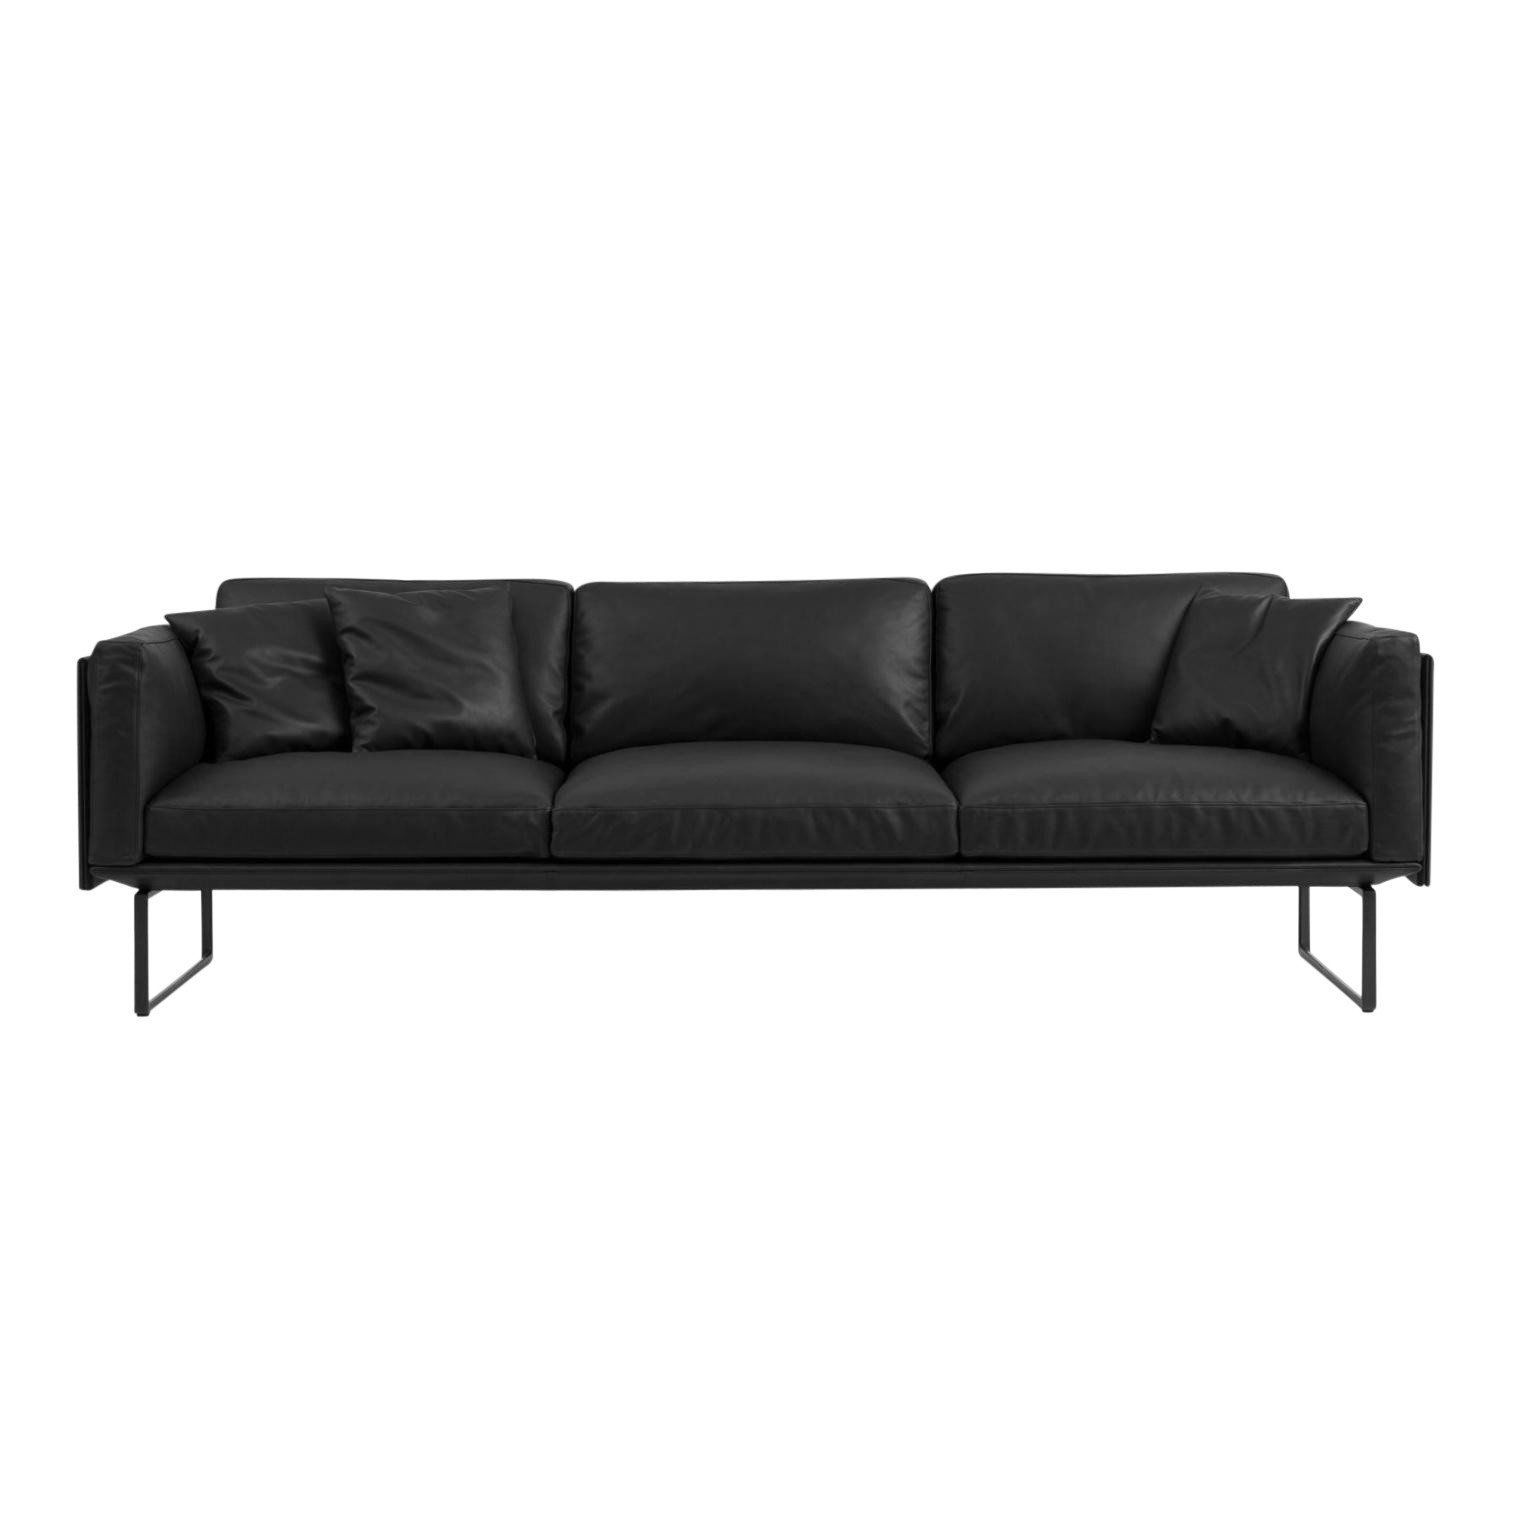 Attractive Cassina   8 Piero Lissoni 3 Seater Sofa 251x88cm   Black/frame Matt Black